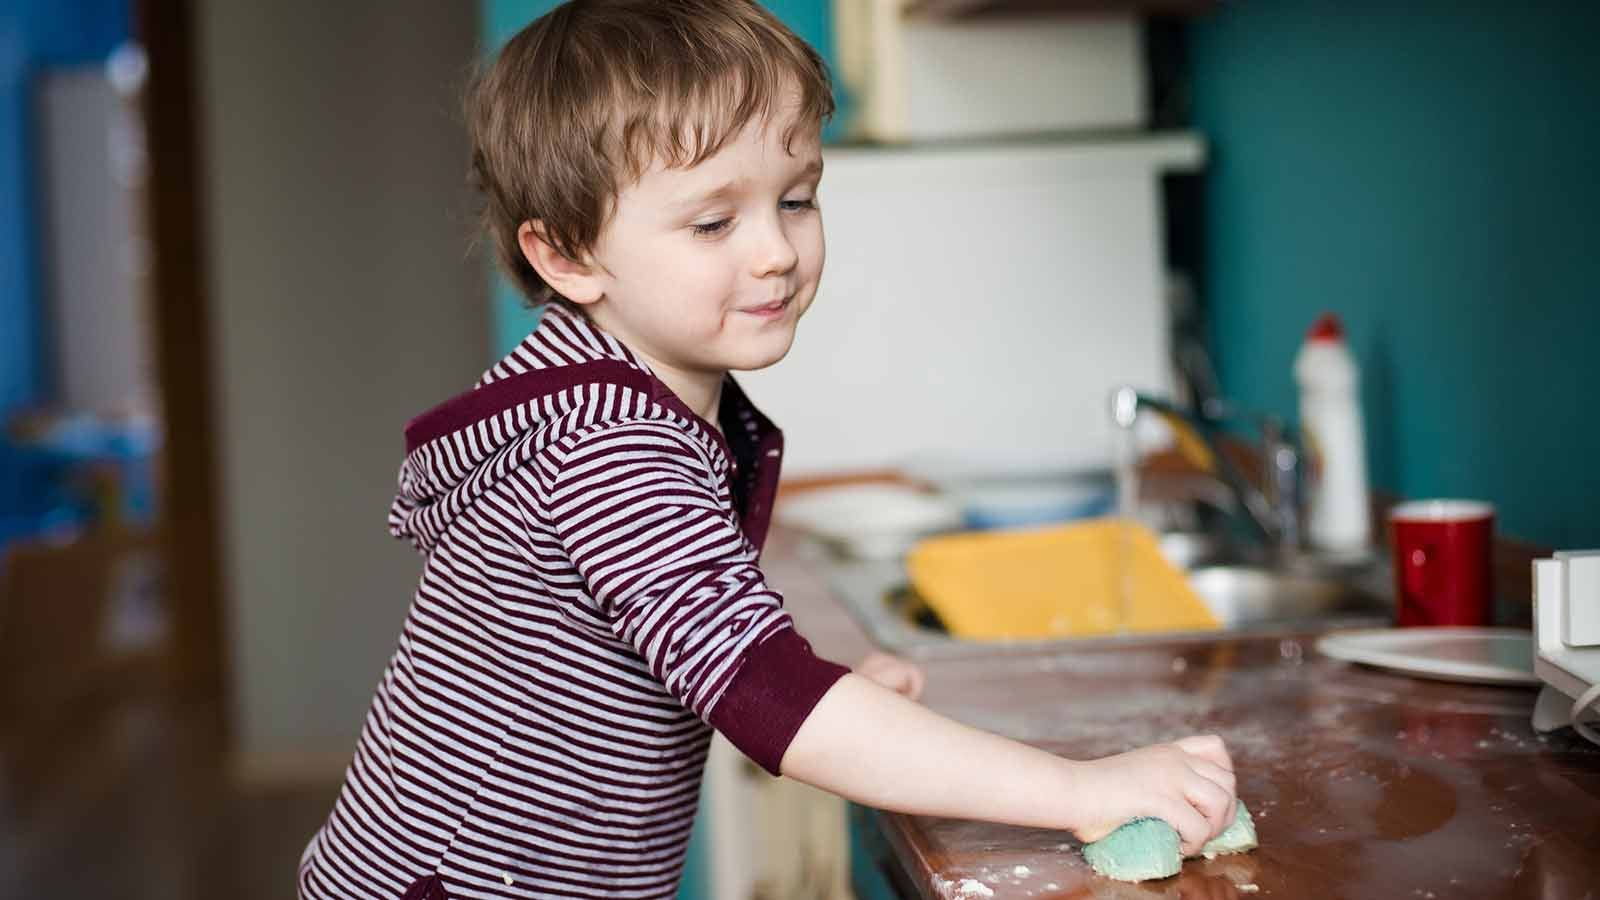 A young boy wiping down a counter in the kitchen.